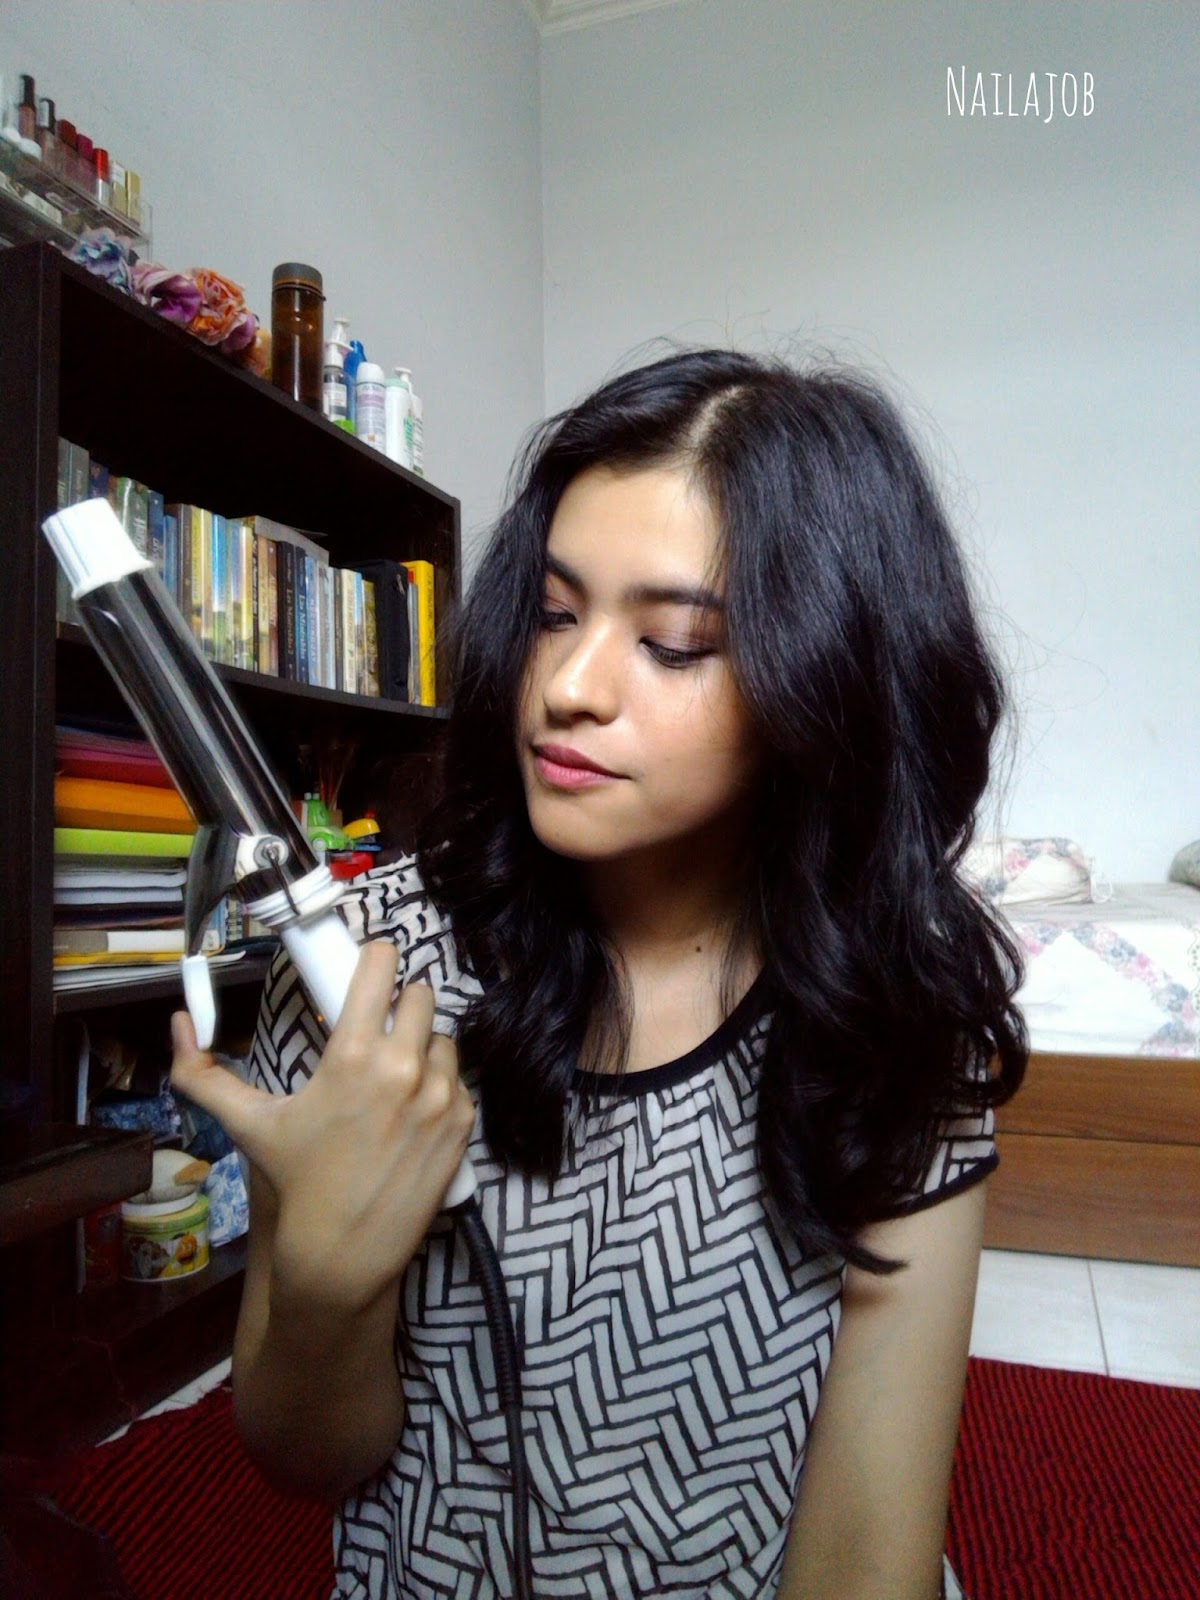 Repit Professional Curling Iron 35 Mm Review Beauty Dgrad Dont Curl You Hair In Big Section As It Wont Deliver Satisfying Result